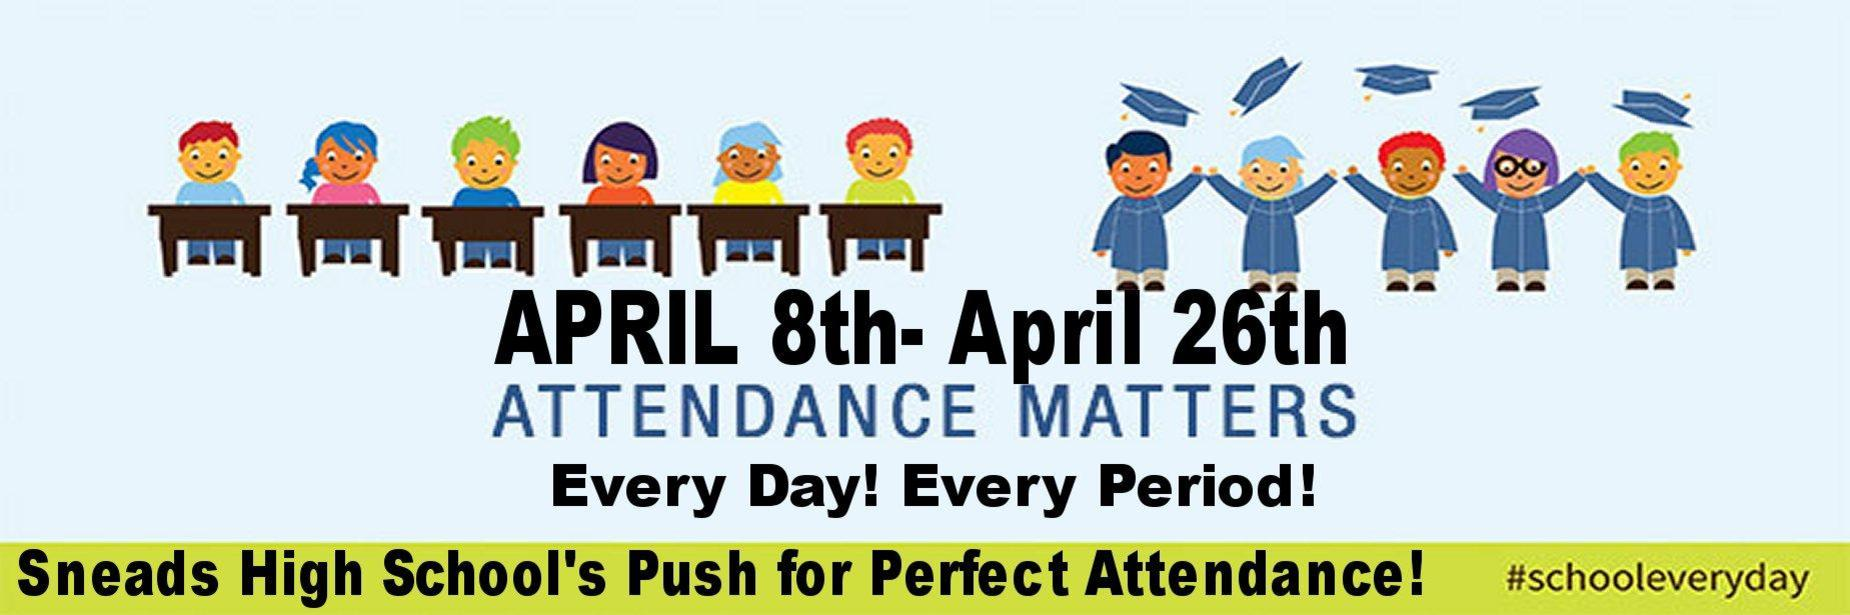 Push for Perfect Attendance April 8th - April 26th